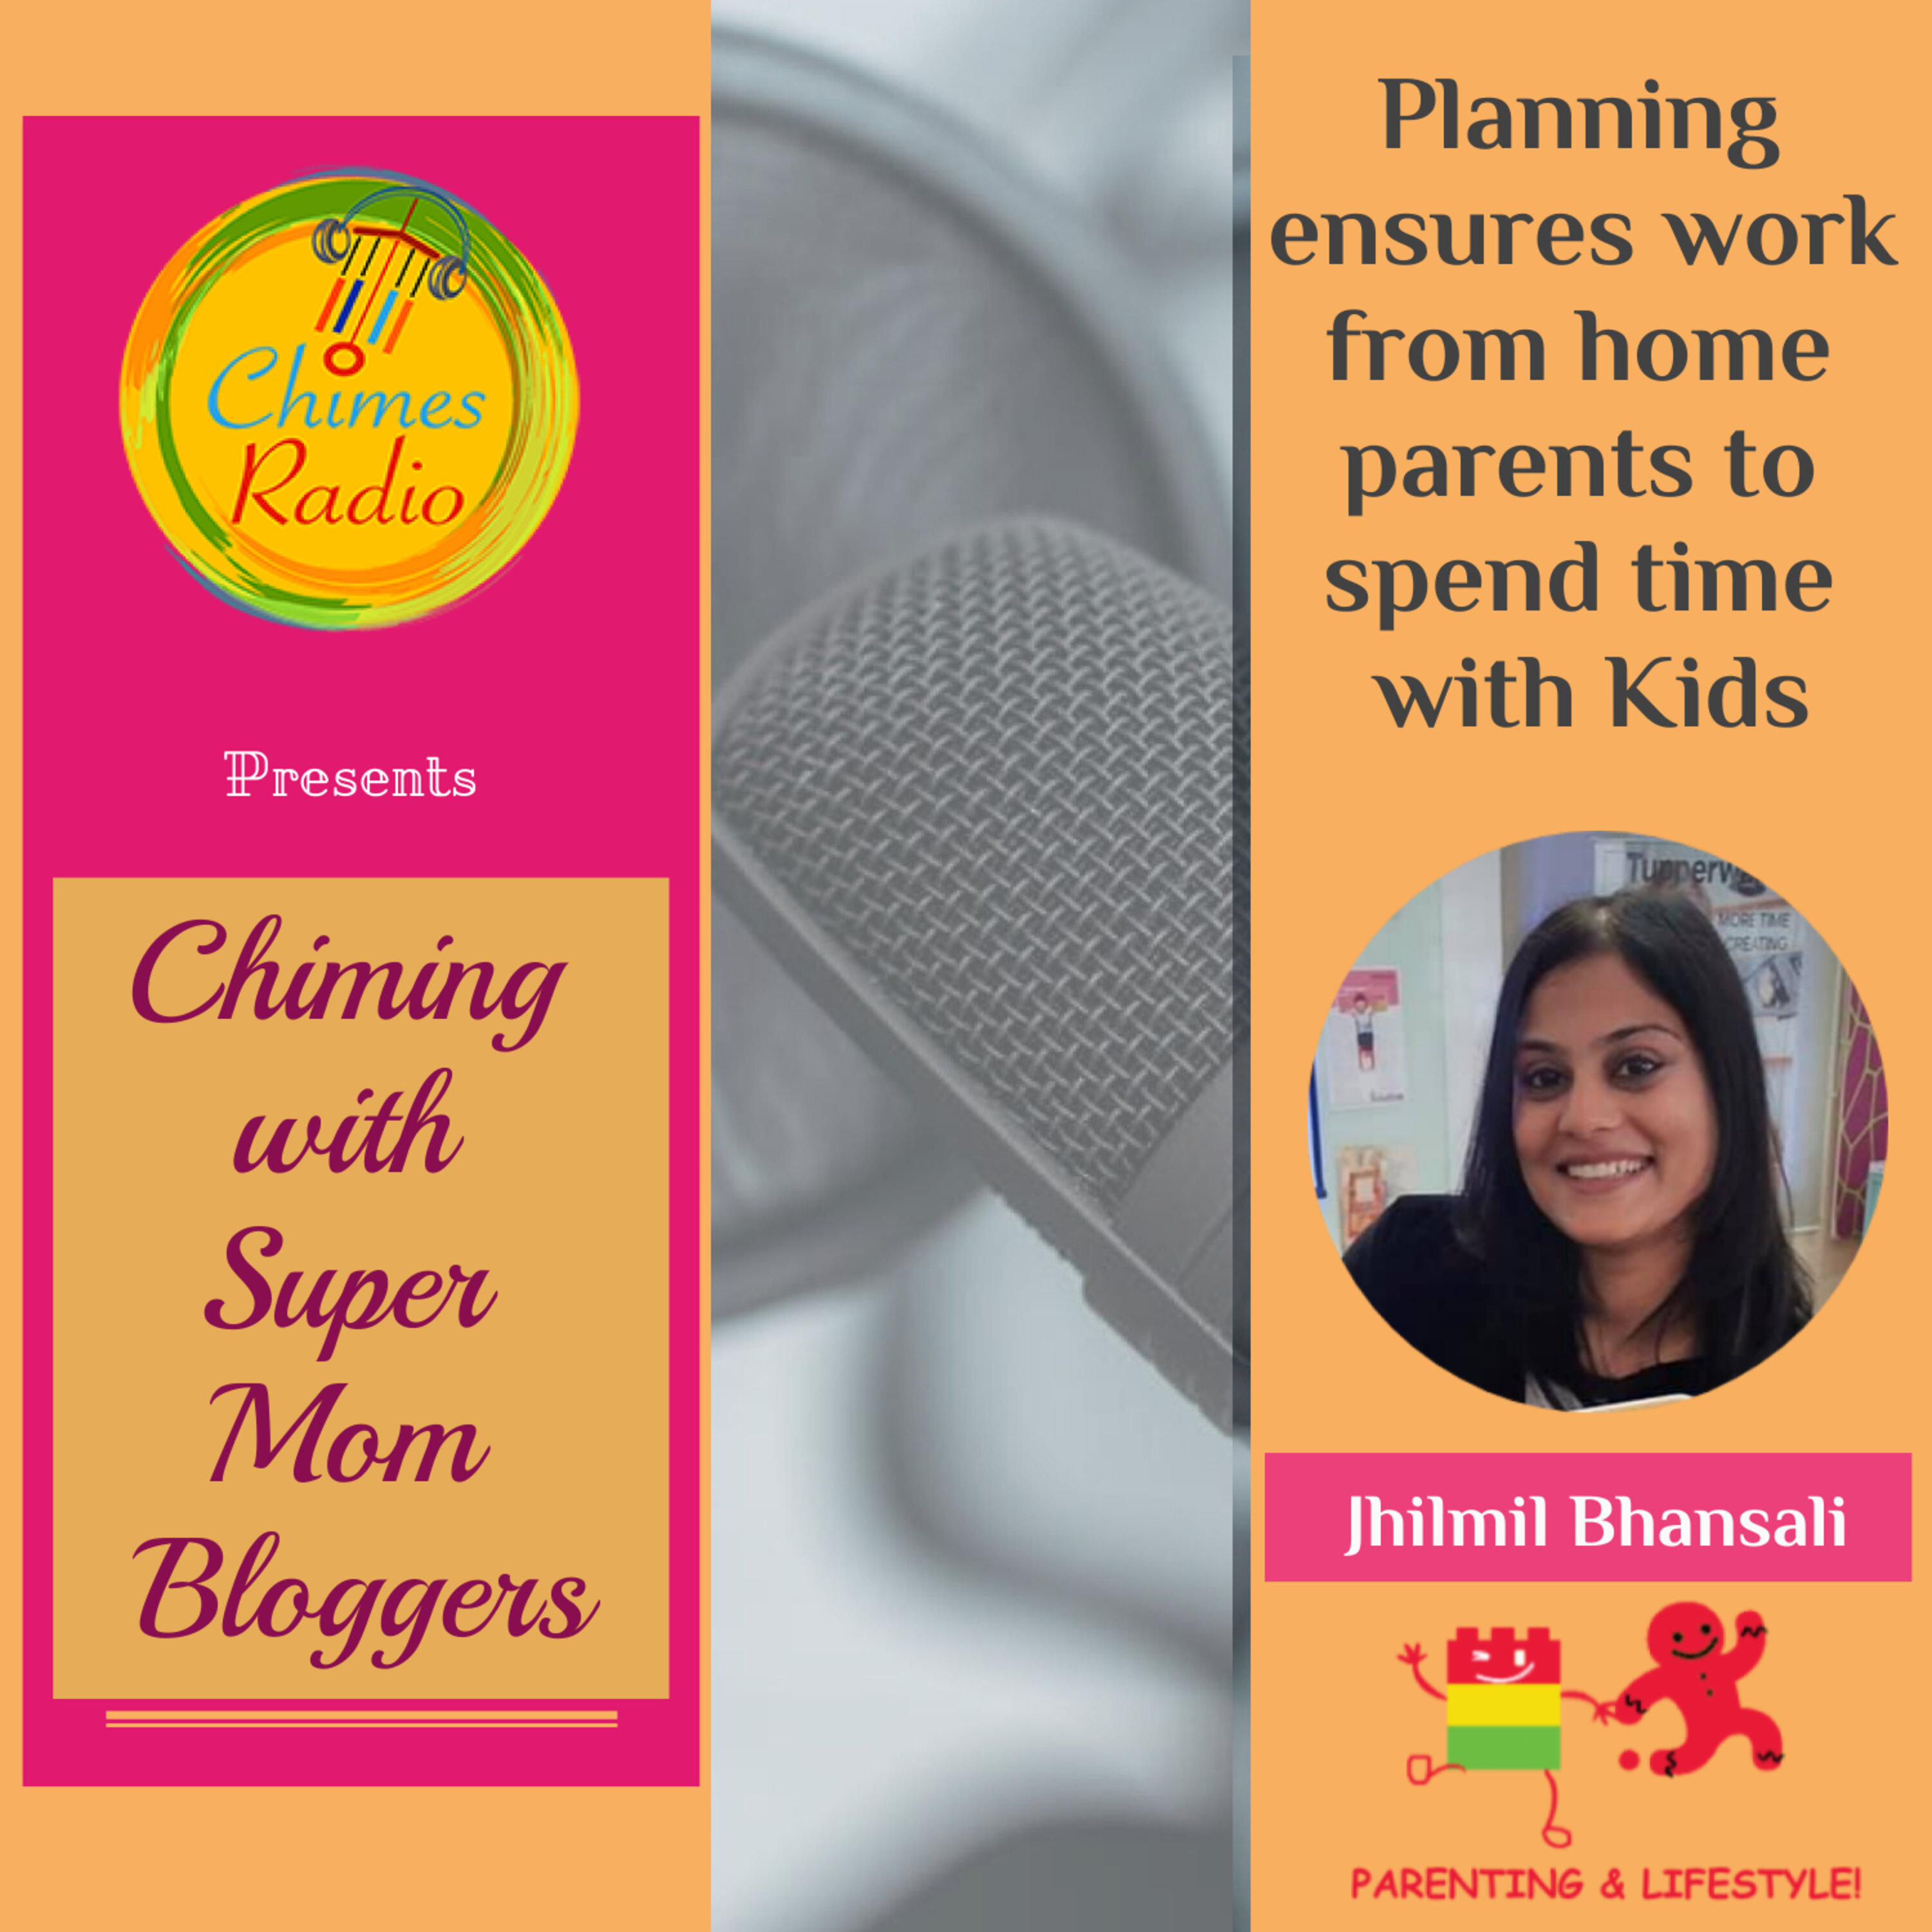 Super Mom Bloggers - Planning ensures WFH parents can spend time with kids